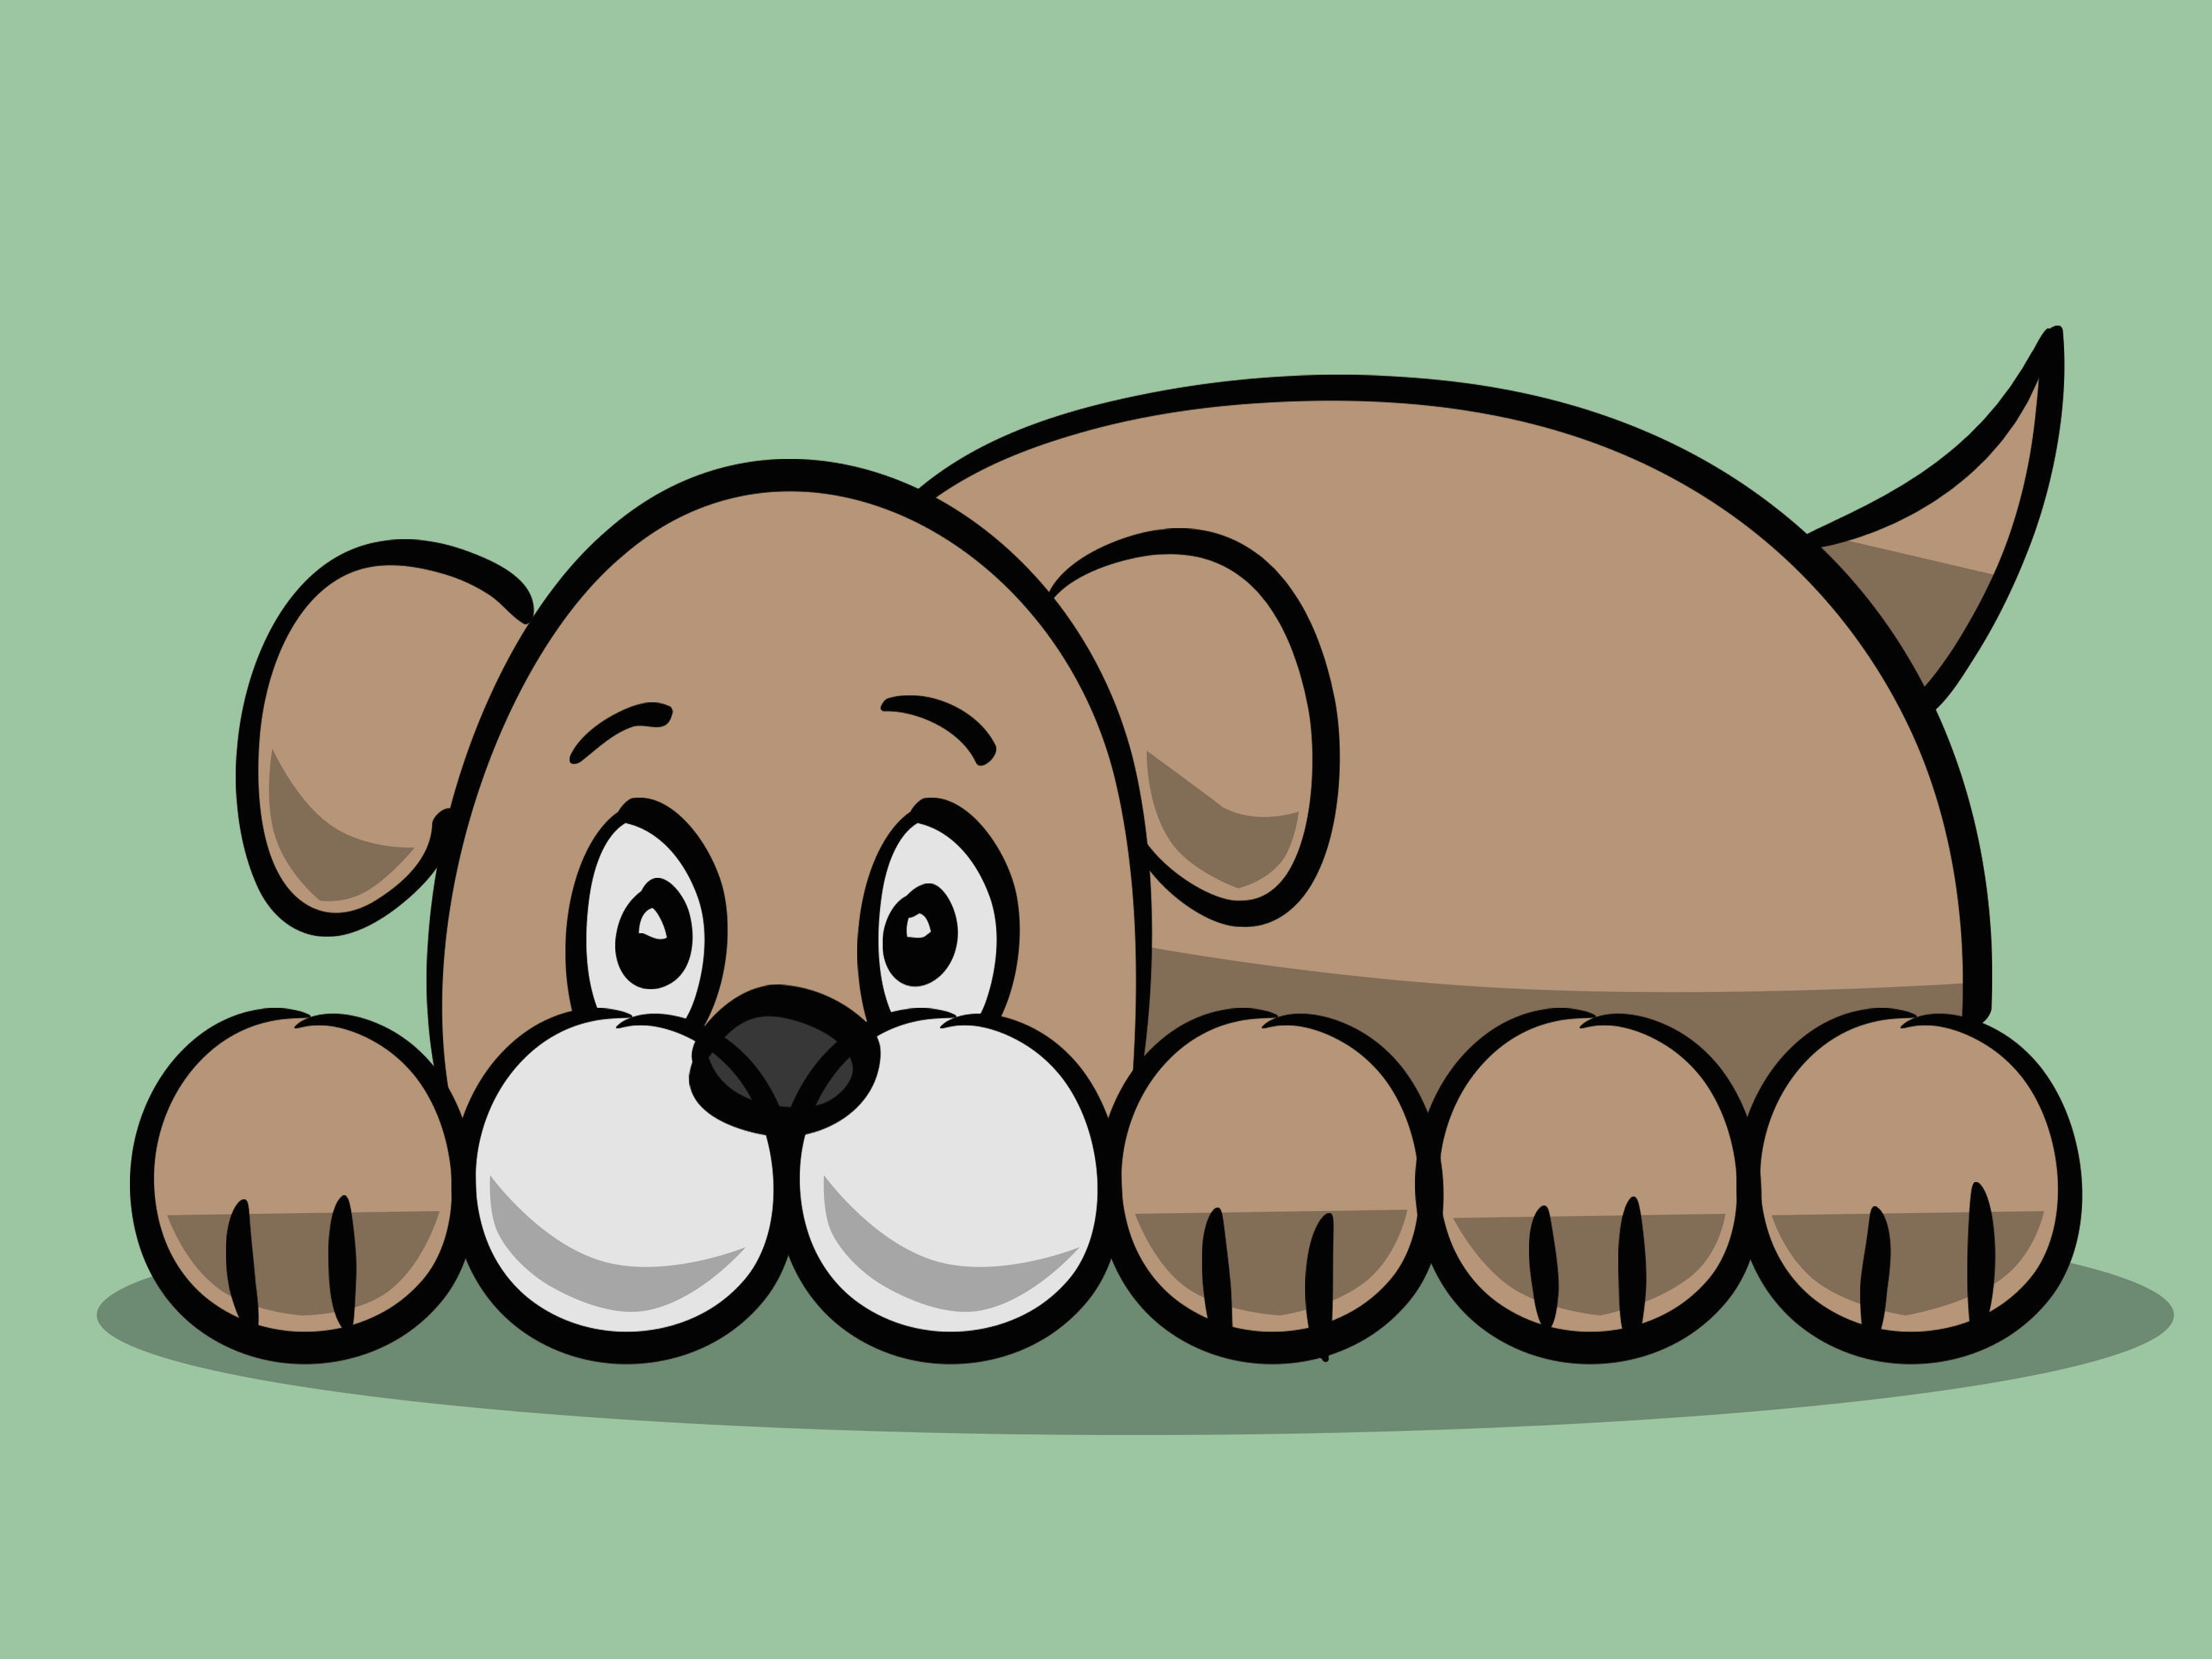 draw a simple cartoon dog step 11 version 3 jpg